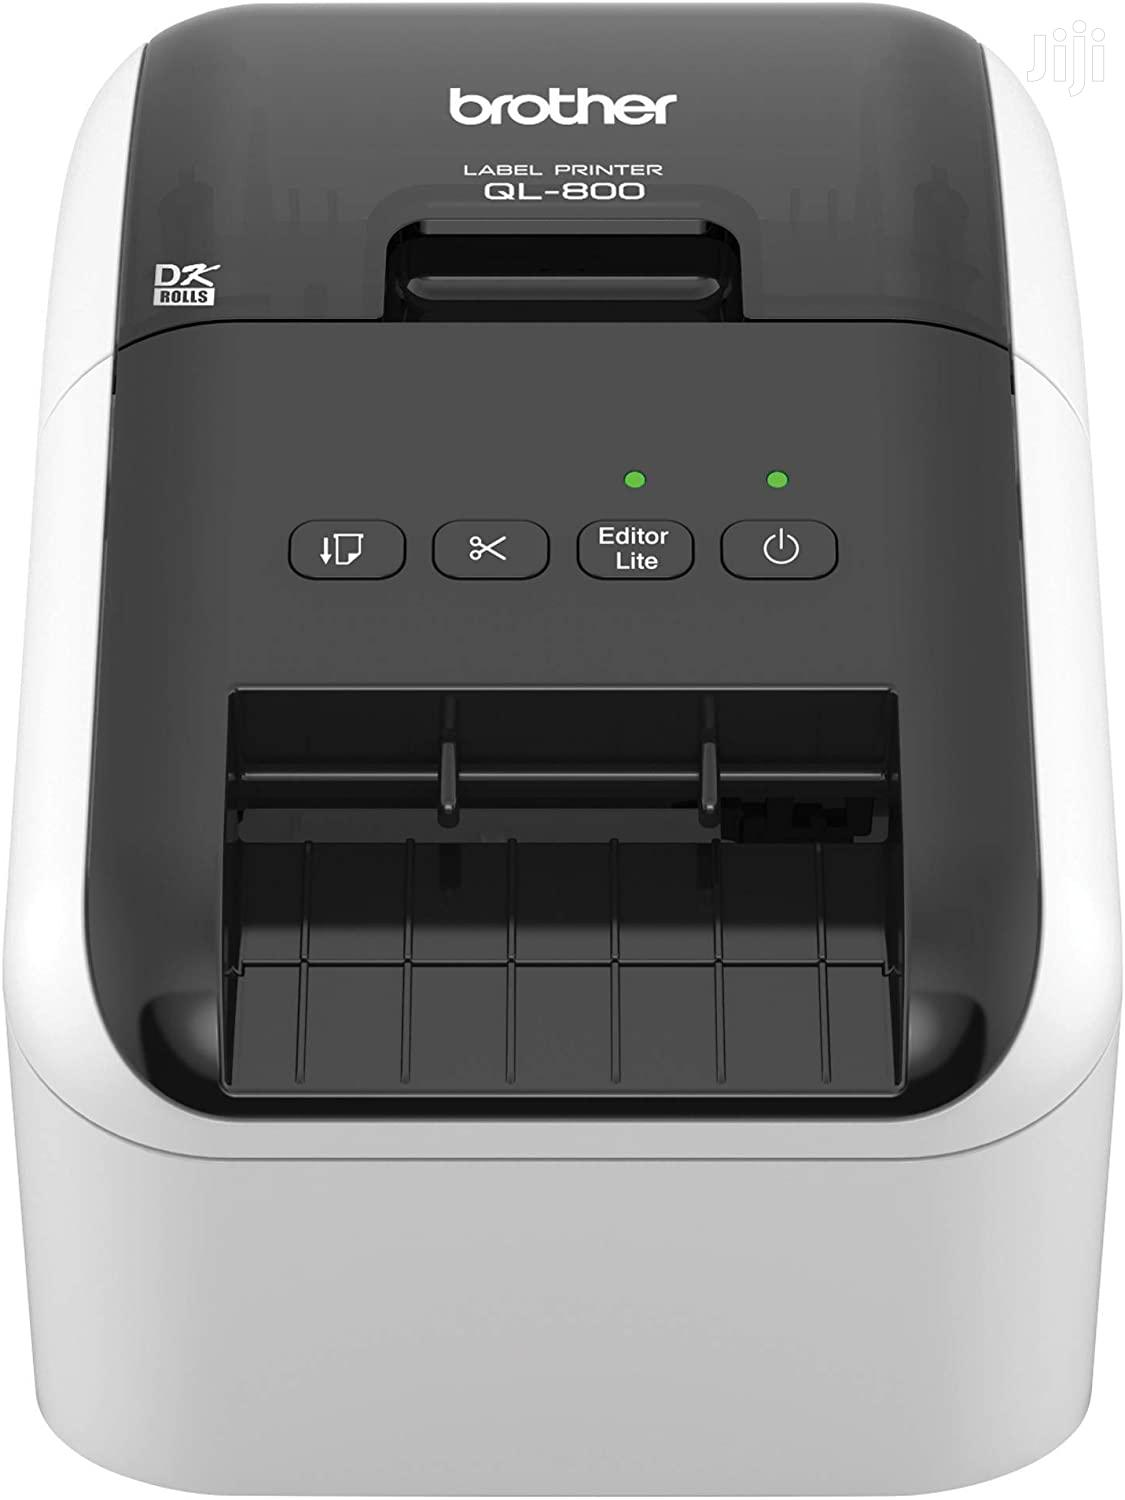 Archive: Brother High-speed Professional Label Printer